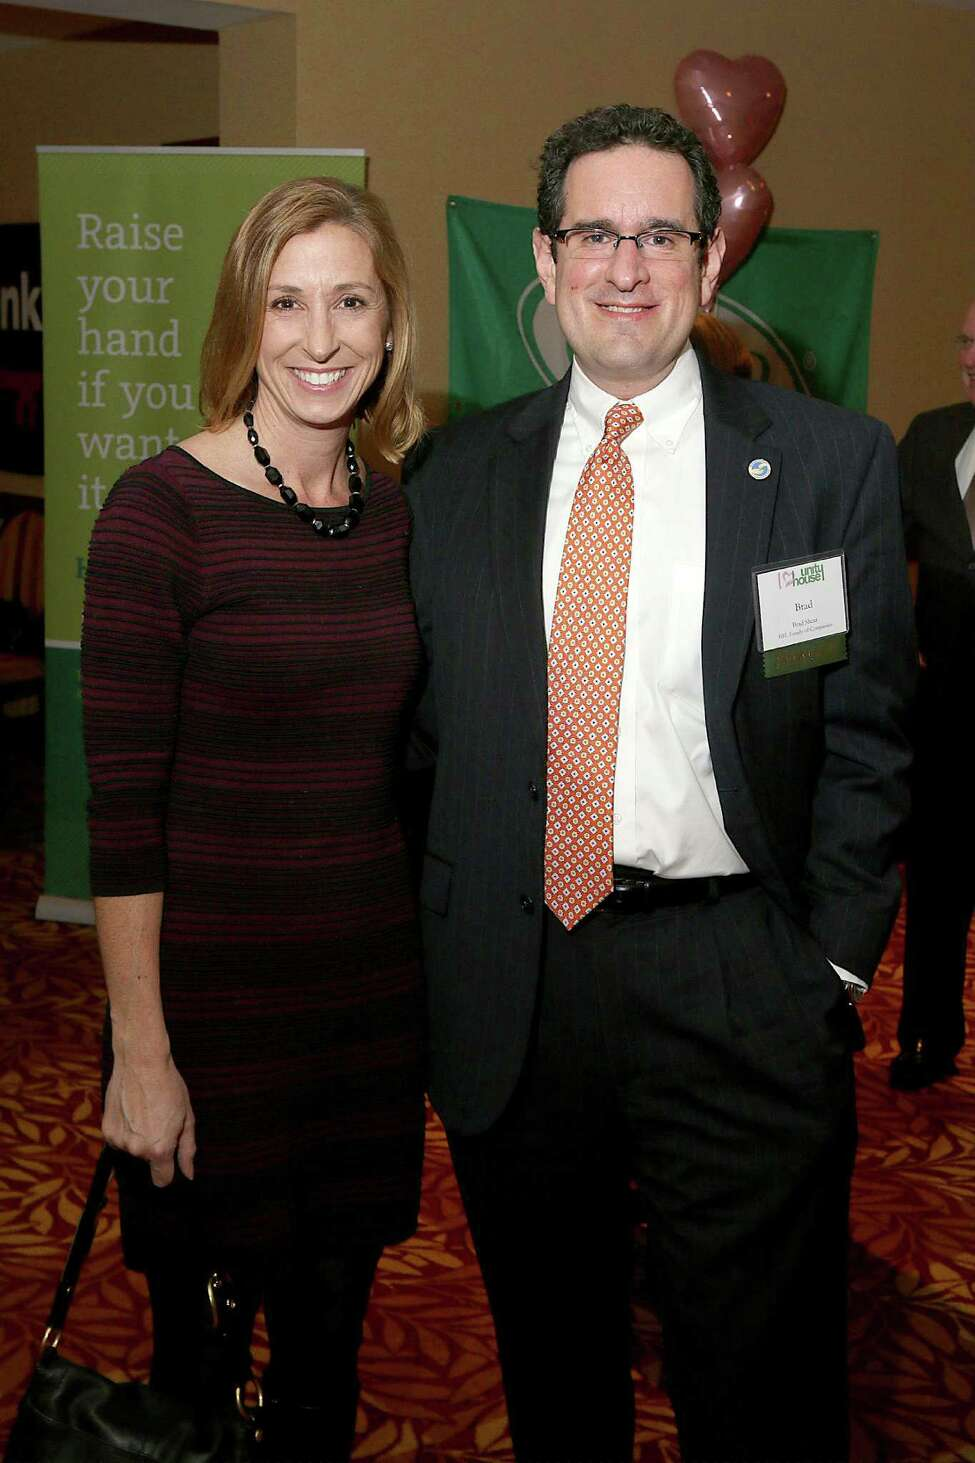 Were you Seen at the 'I Love Unity House Gala' at the Hilton Garden Inn in Troy on Friday, Feb. 13, 2015? The event honored BBL Companies and the Breslin Family.